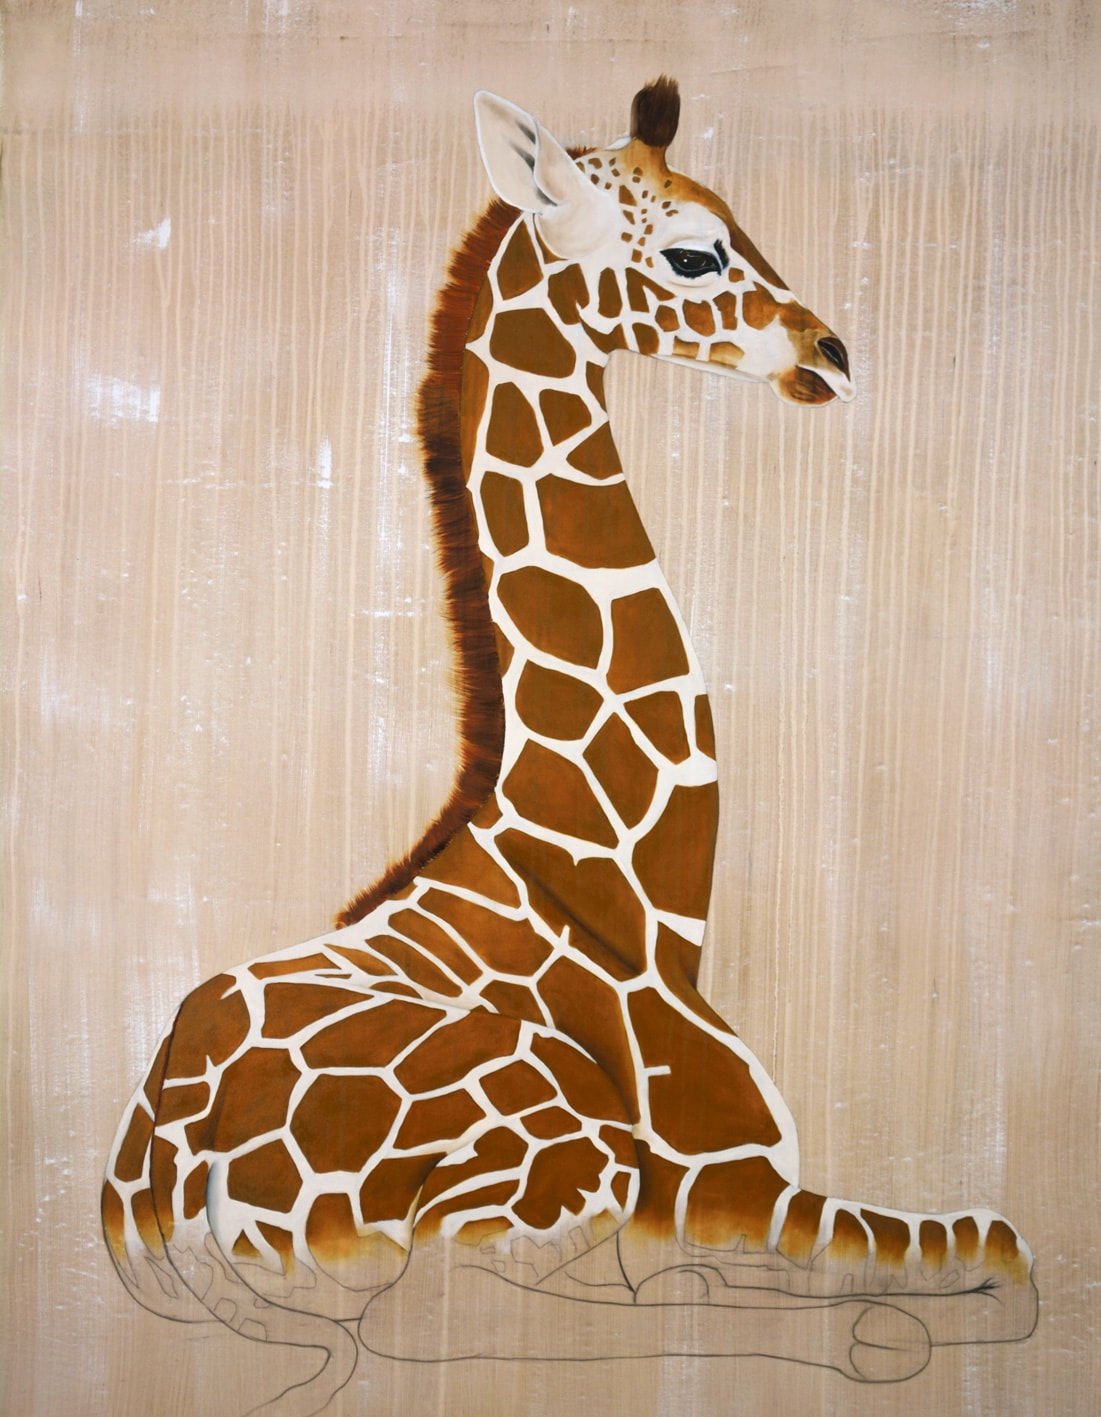 GIRAFE de Rothschild divers Thierry Bisch Contemporary painter animals painting art decoration nature biodiversity conservation